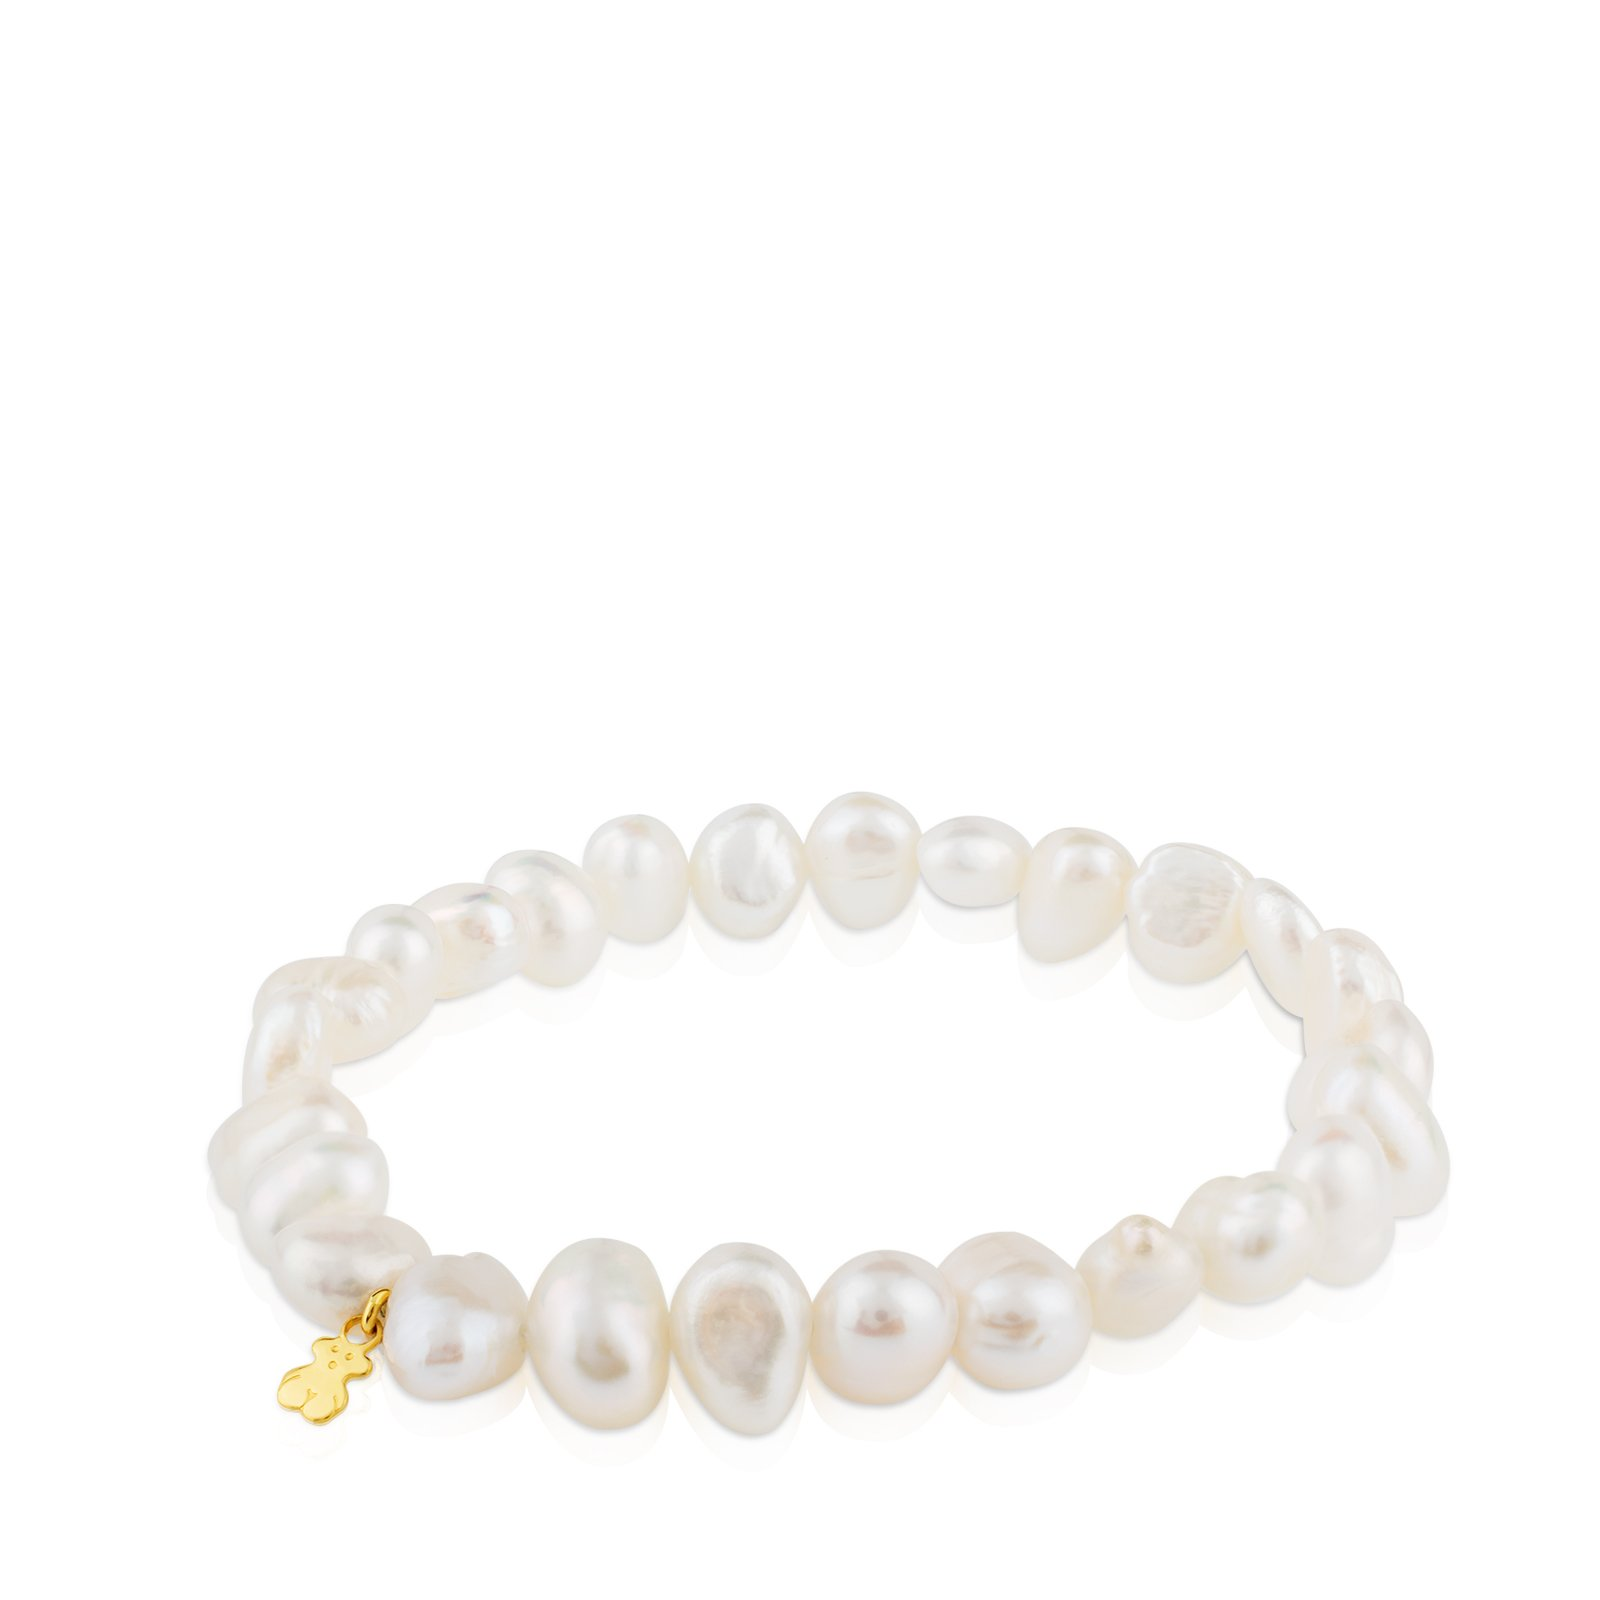 TOUS Sweet Dolls 18k Yellow-Gold Stretch Bracelet with White Chinese-Freshwater-Cultured Pearl 7.0-7.5 mm by TOUS